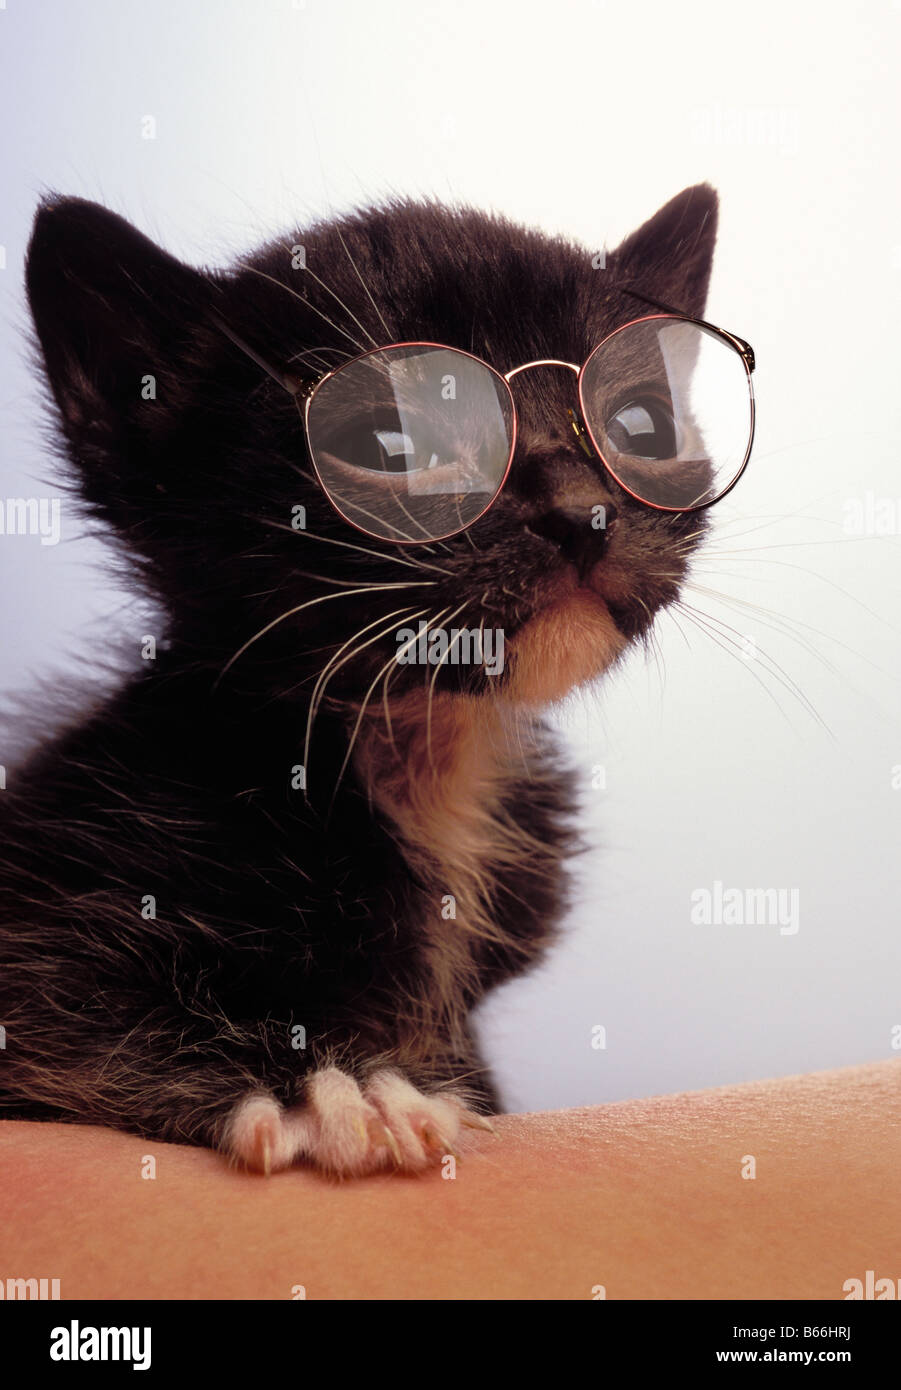 Kitten wearing eyeglasses Photo Stock